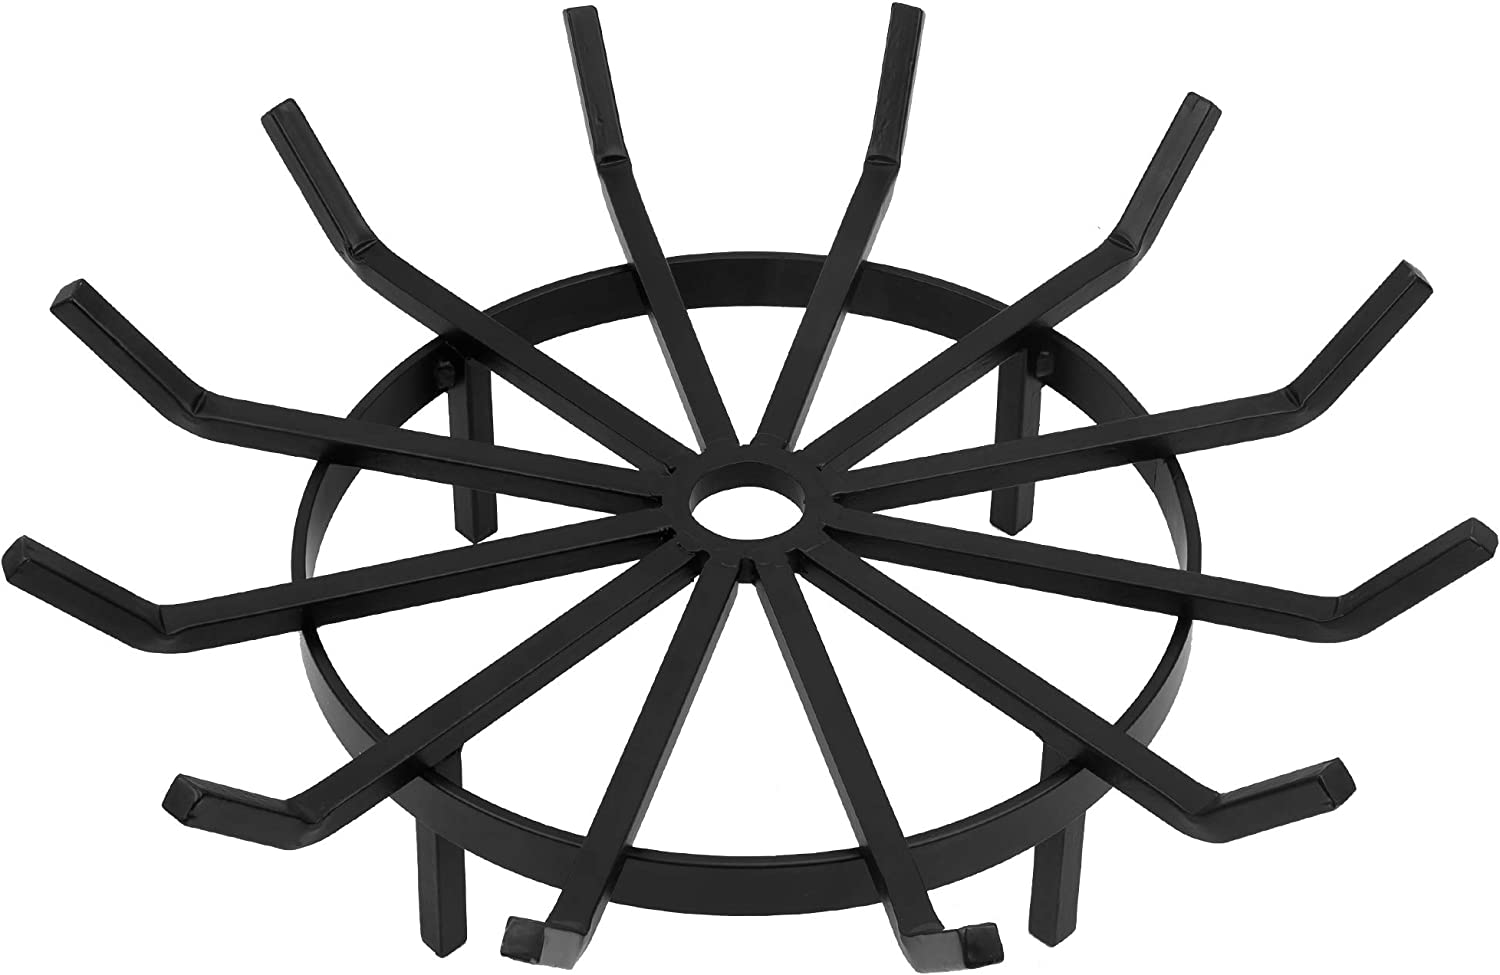 Max 65% OFF Amagabeli 24in 5 ☆ popular Fire Grate Log Pit Iron Round Wrought